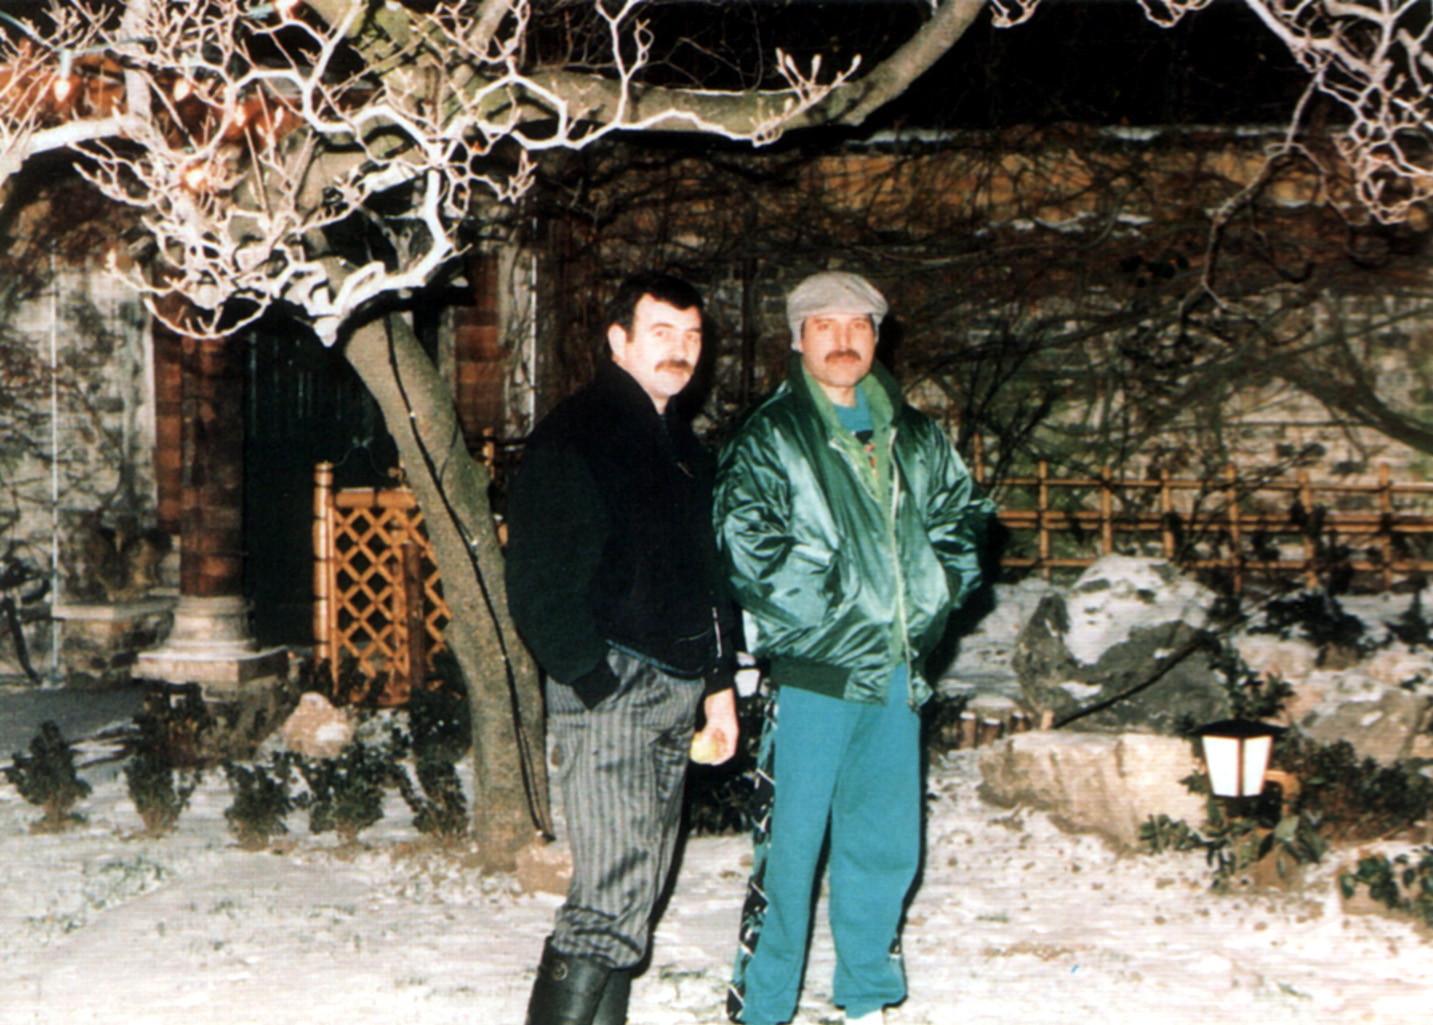 Jim_Hutton_Freddie_Mercury's_Boyfriend http://queenpoland.wordpress.com/foto/freddie-mercury-1980-86/freddie-mercury-and-jim-hutton-in-garden-lodge-2/